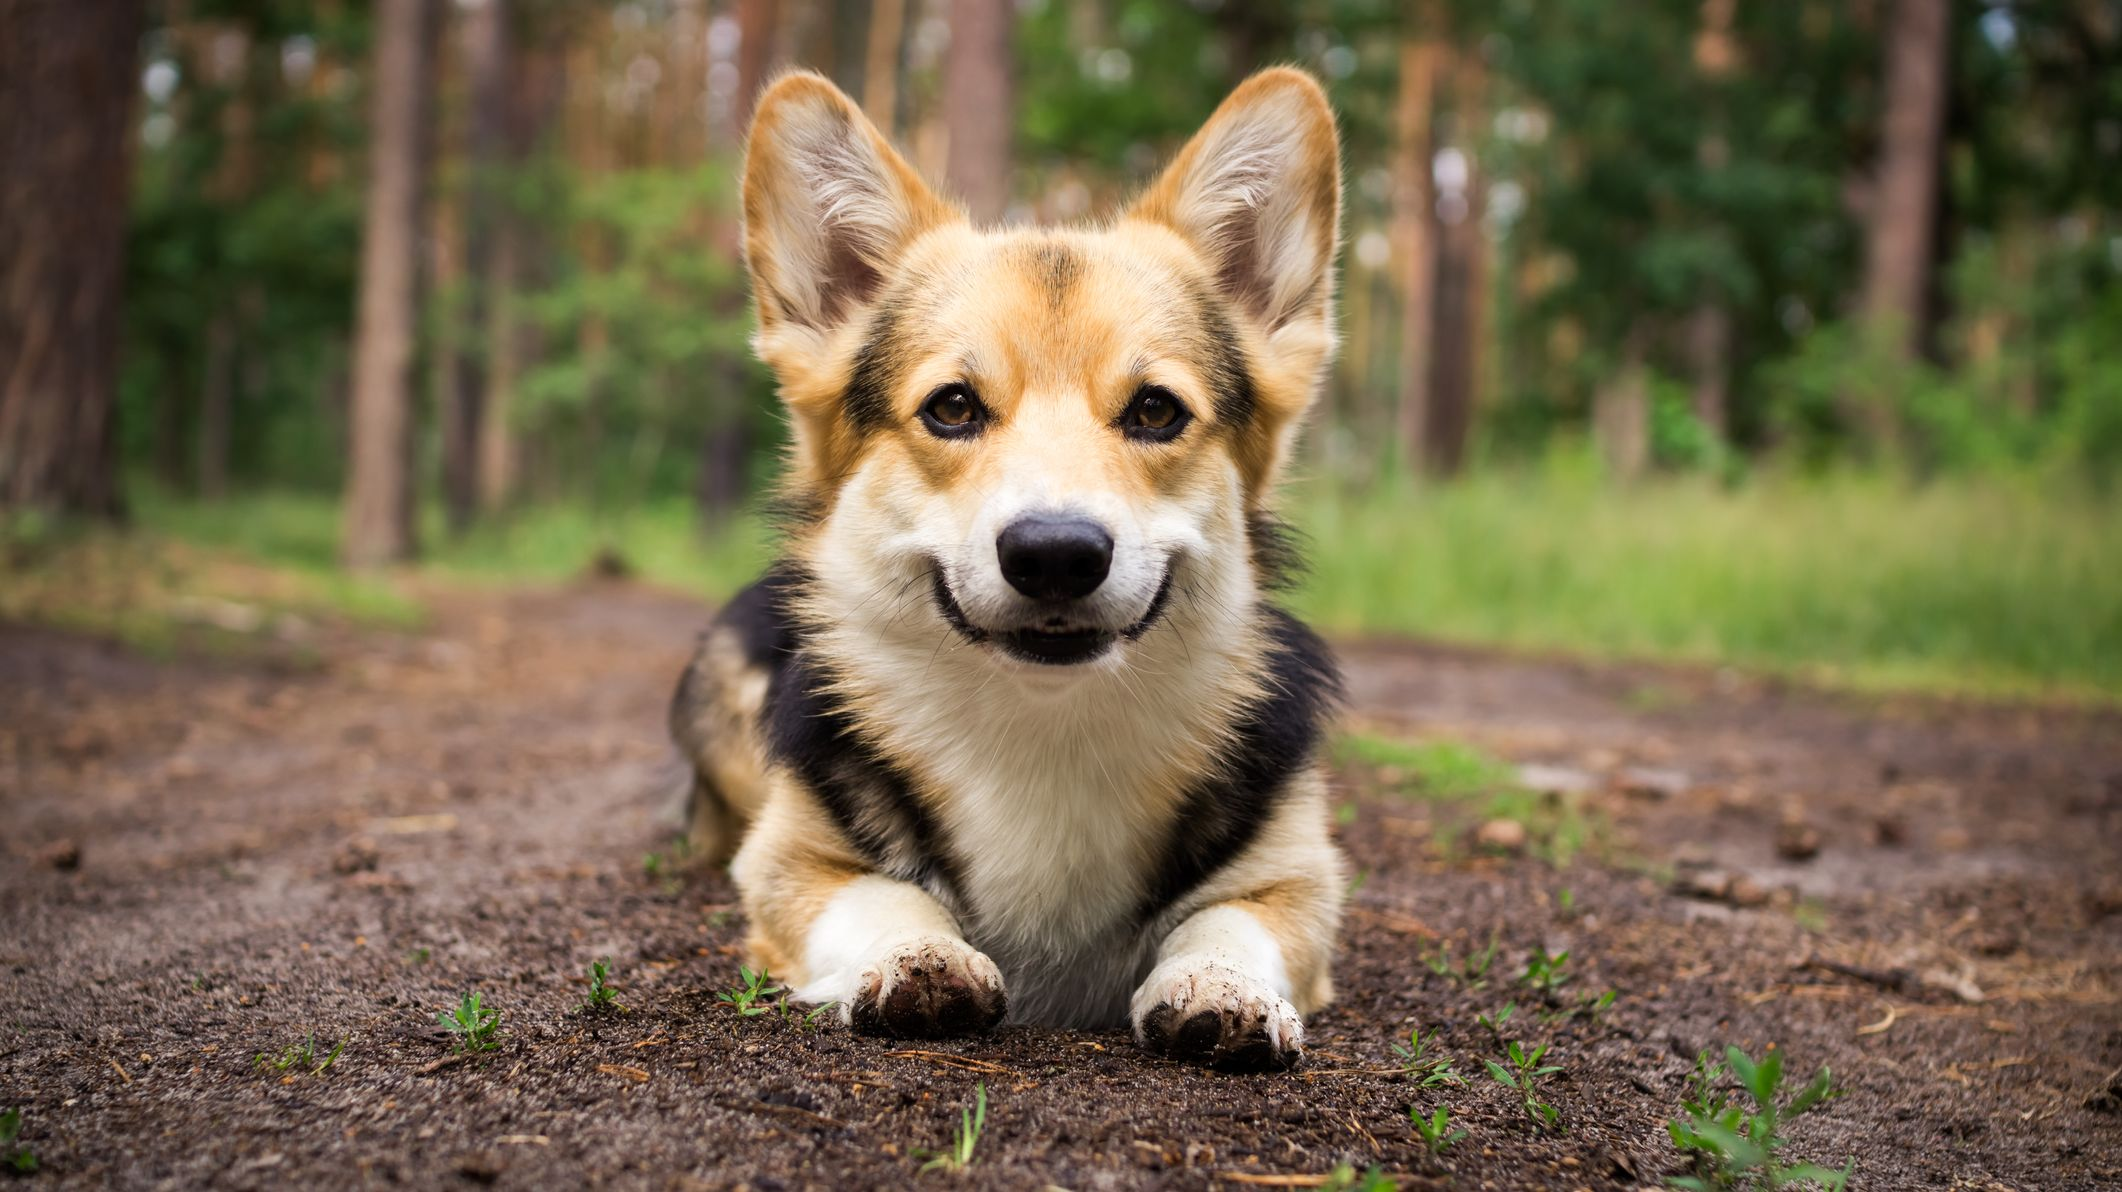 The 10 Most Popular Dog Names of 2019